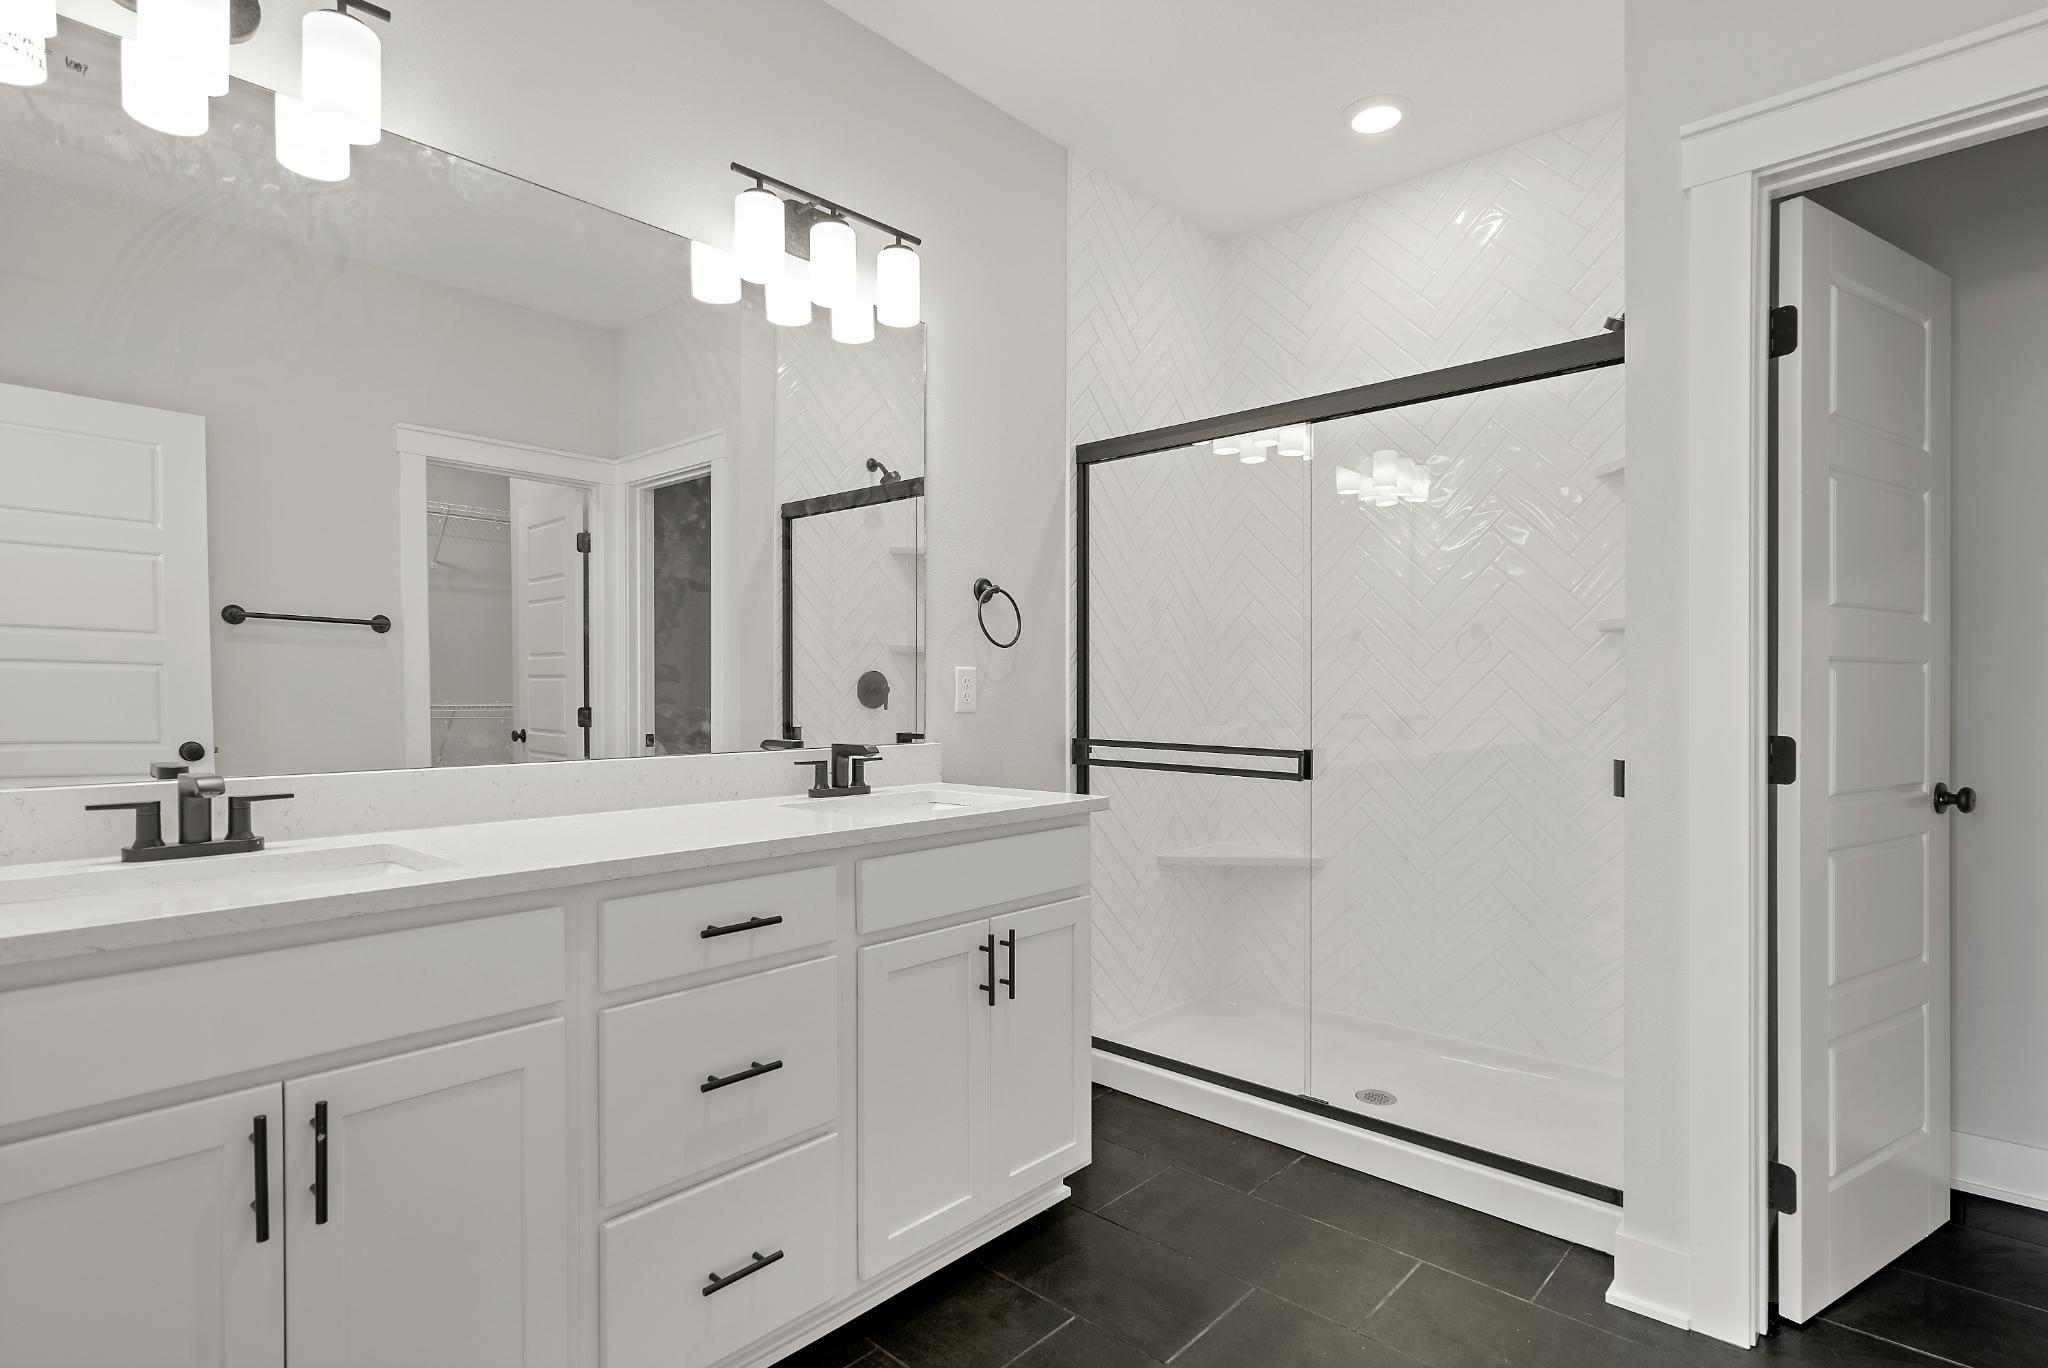 Bathroom featured in the Bradford - IA By Summit Homes in Des Moines, IA